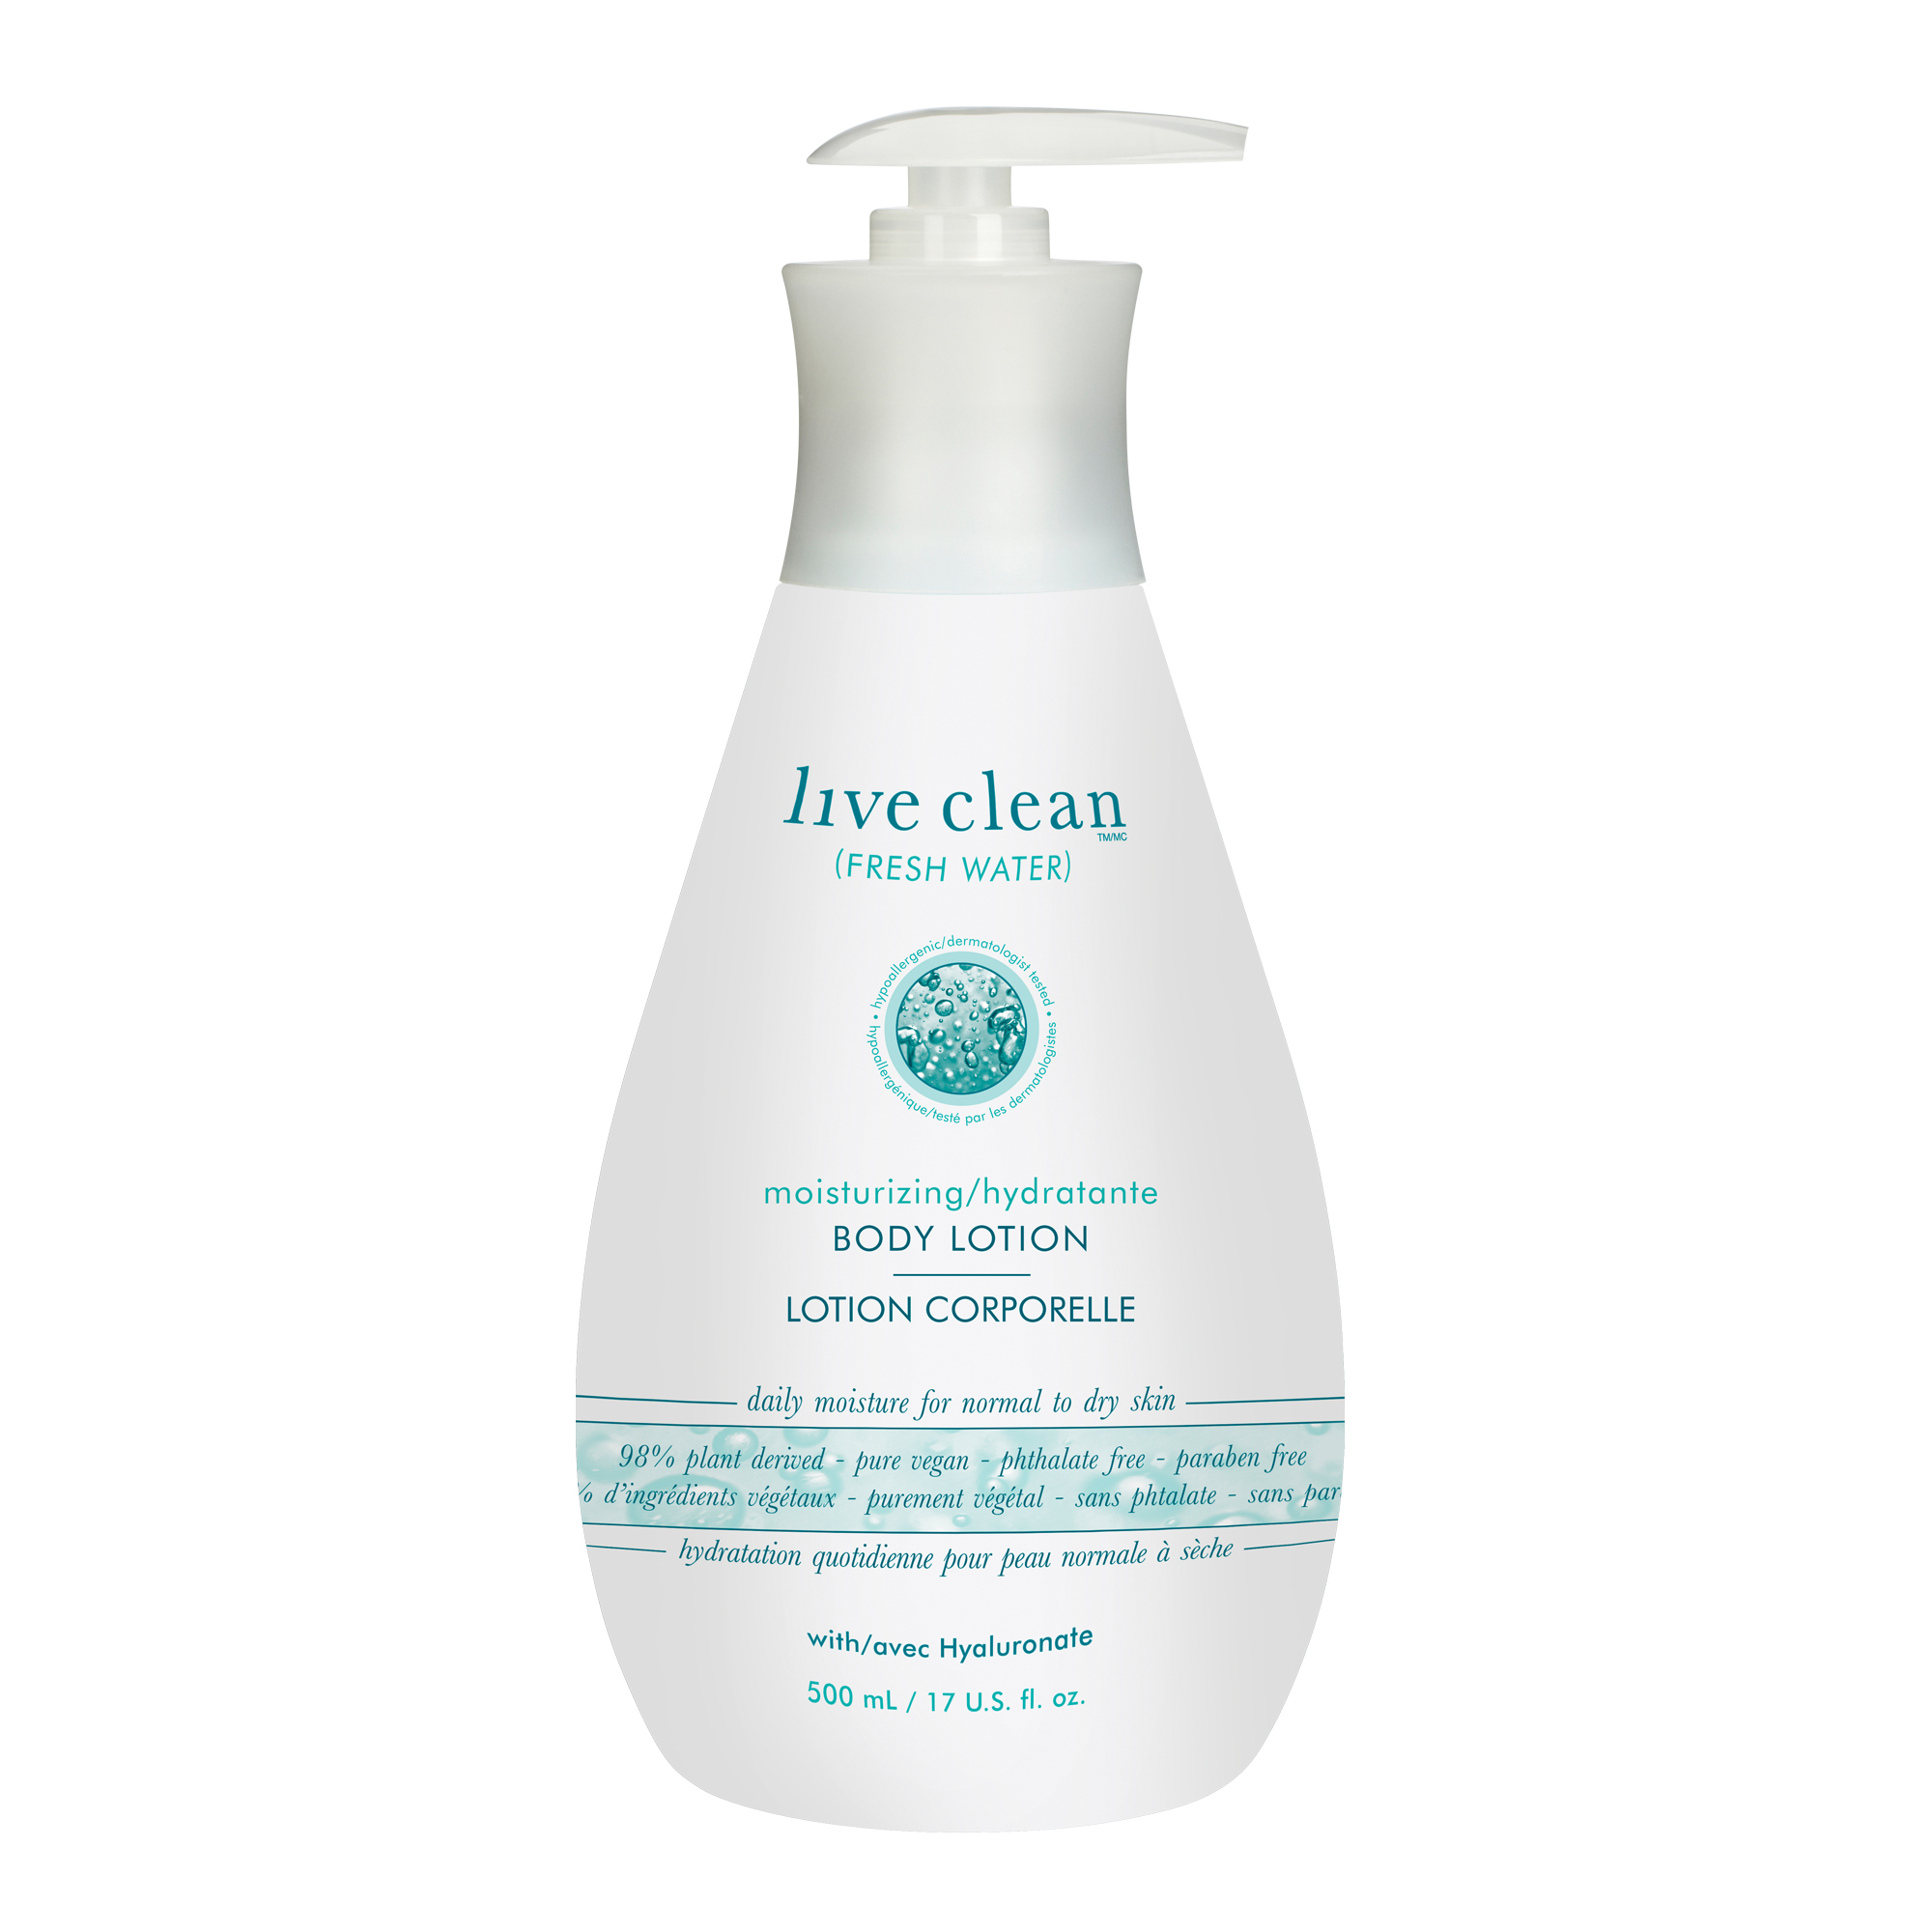 Live Clean Fresh Water Moisturizing Body Lotion Reviews In